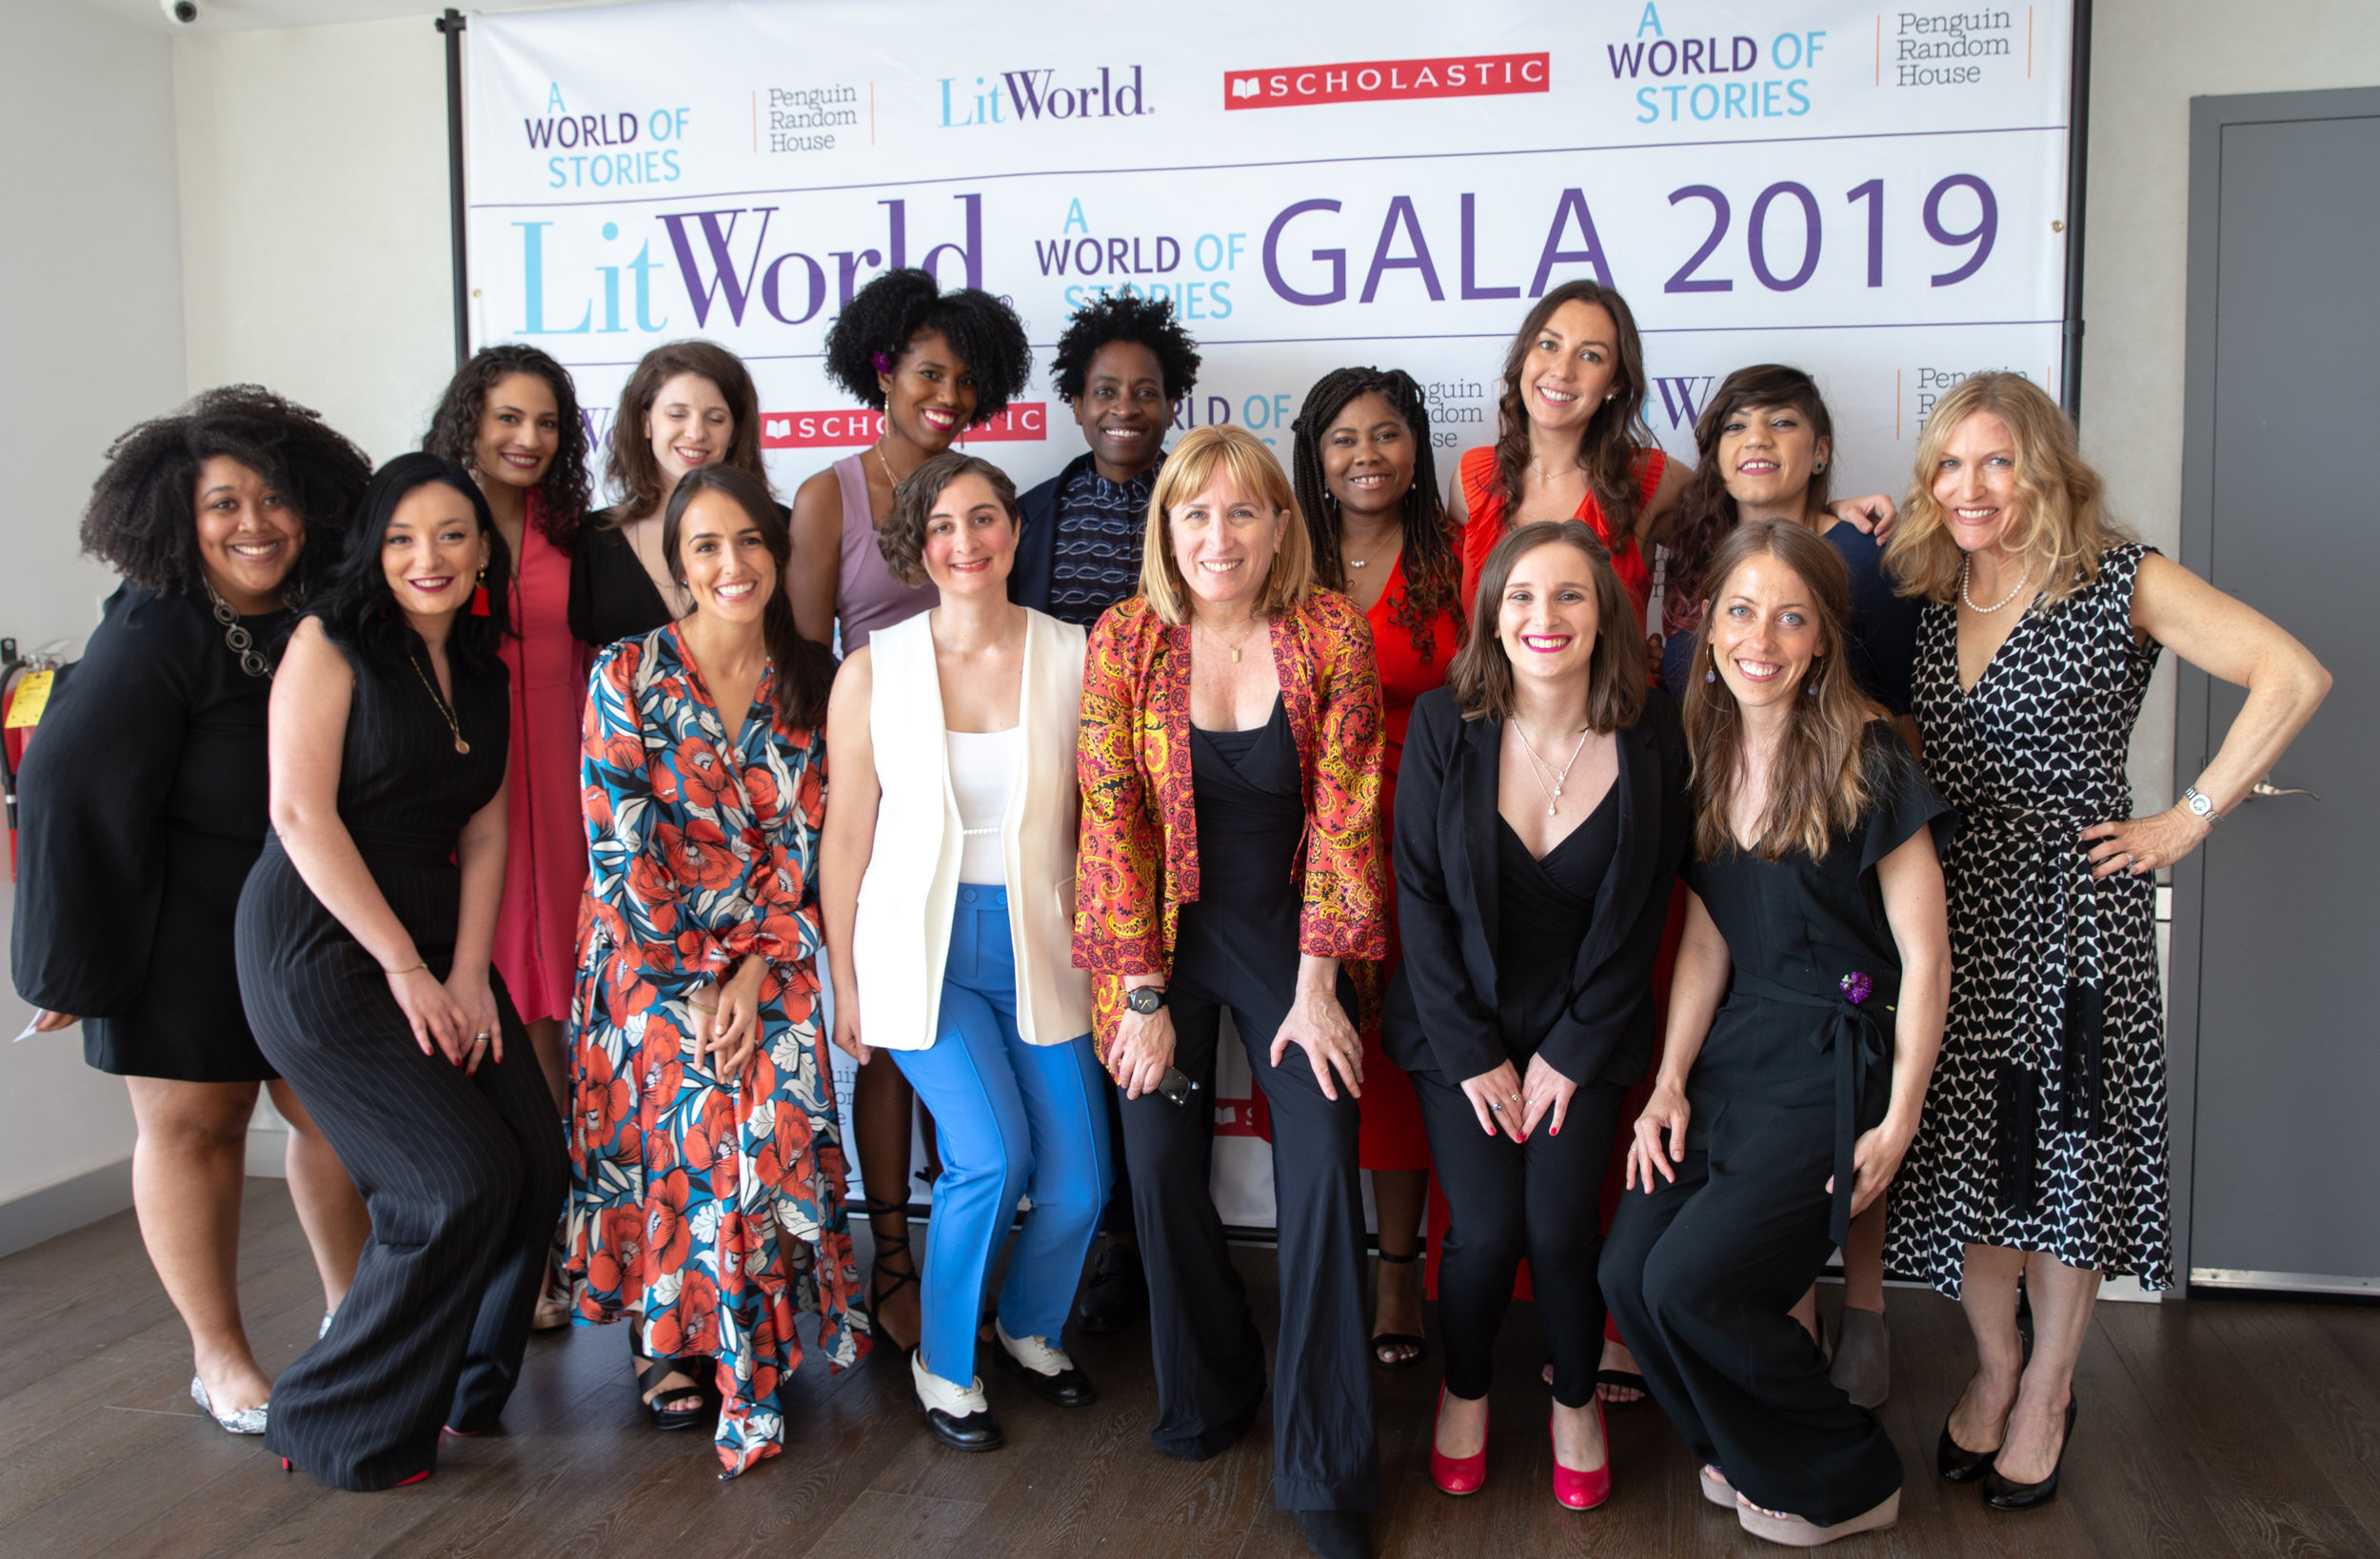 LITWORLD_GALA19-2.jpg